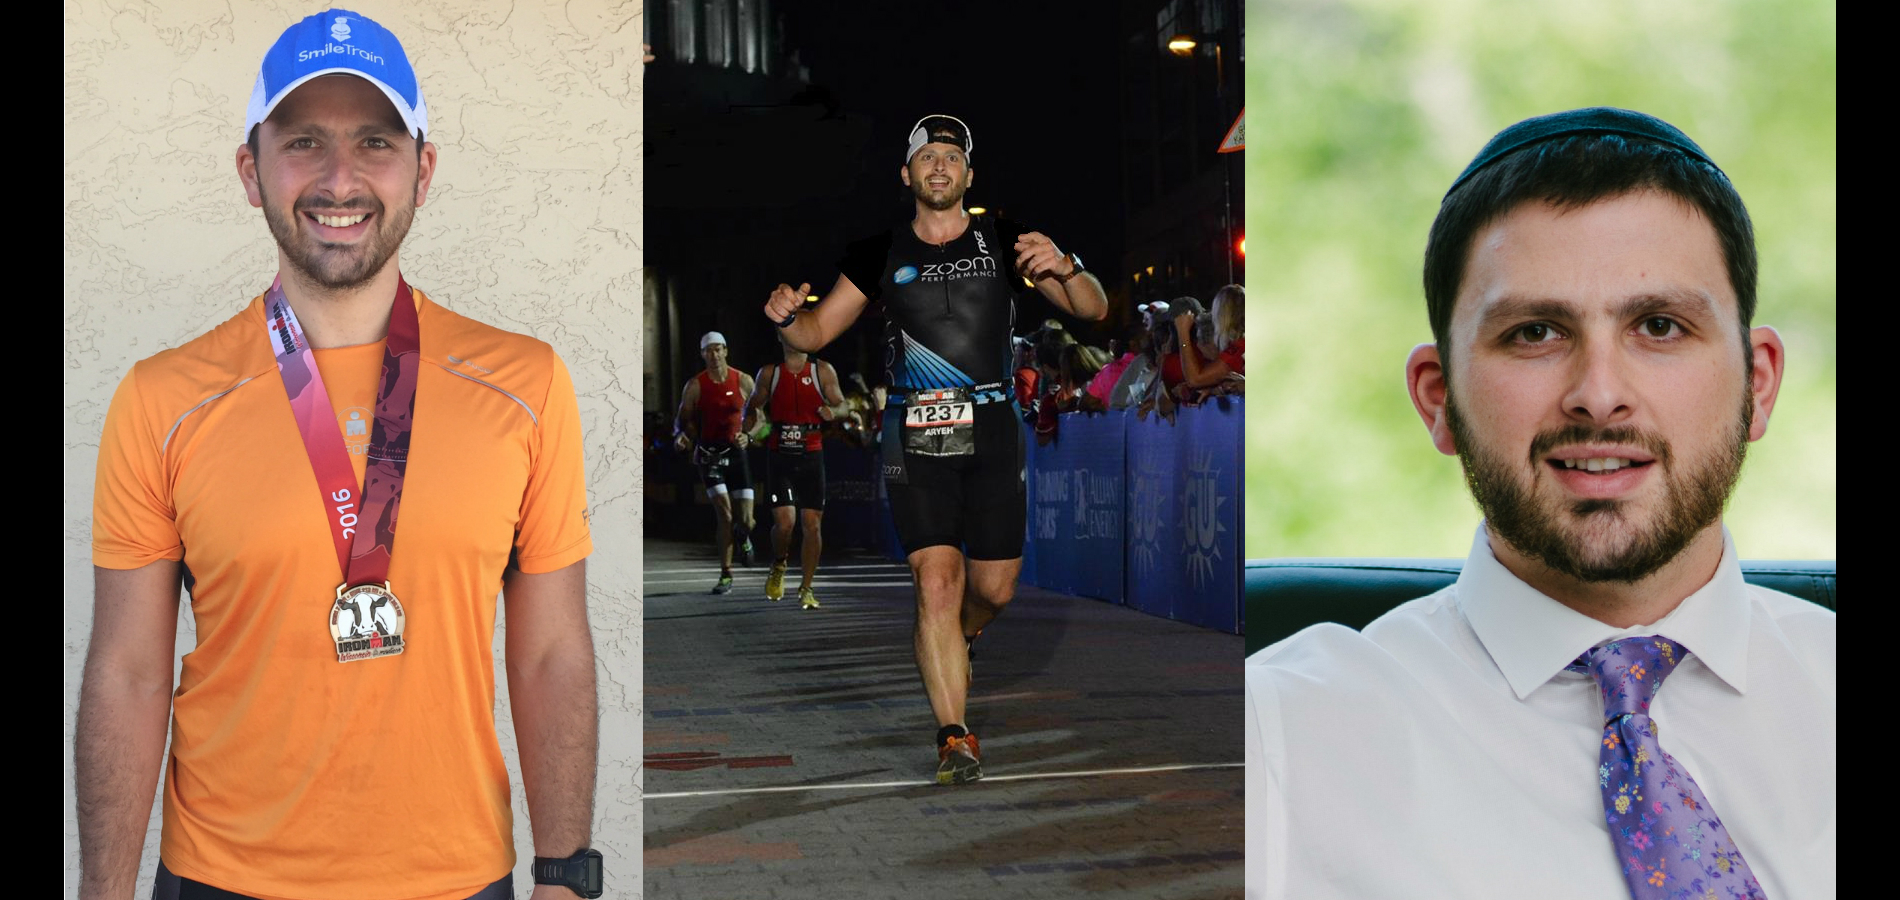 This Orthodox Rabbi Has Done Five Full Ironman Triathlons, And You Can Too